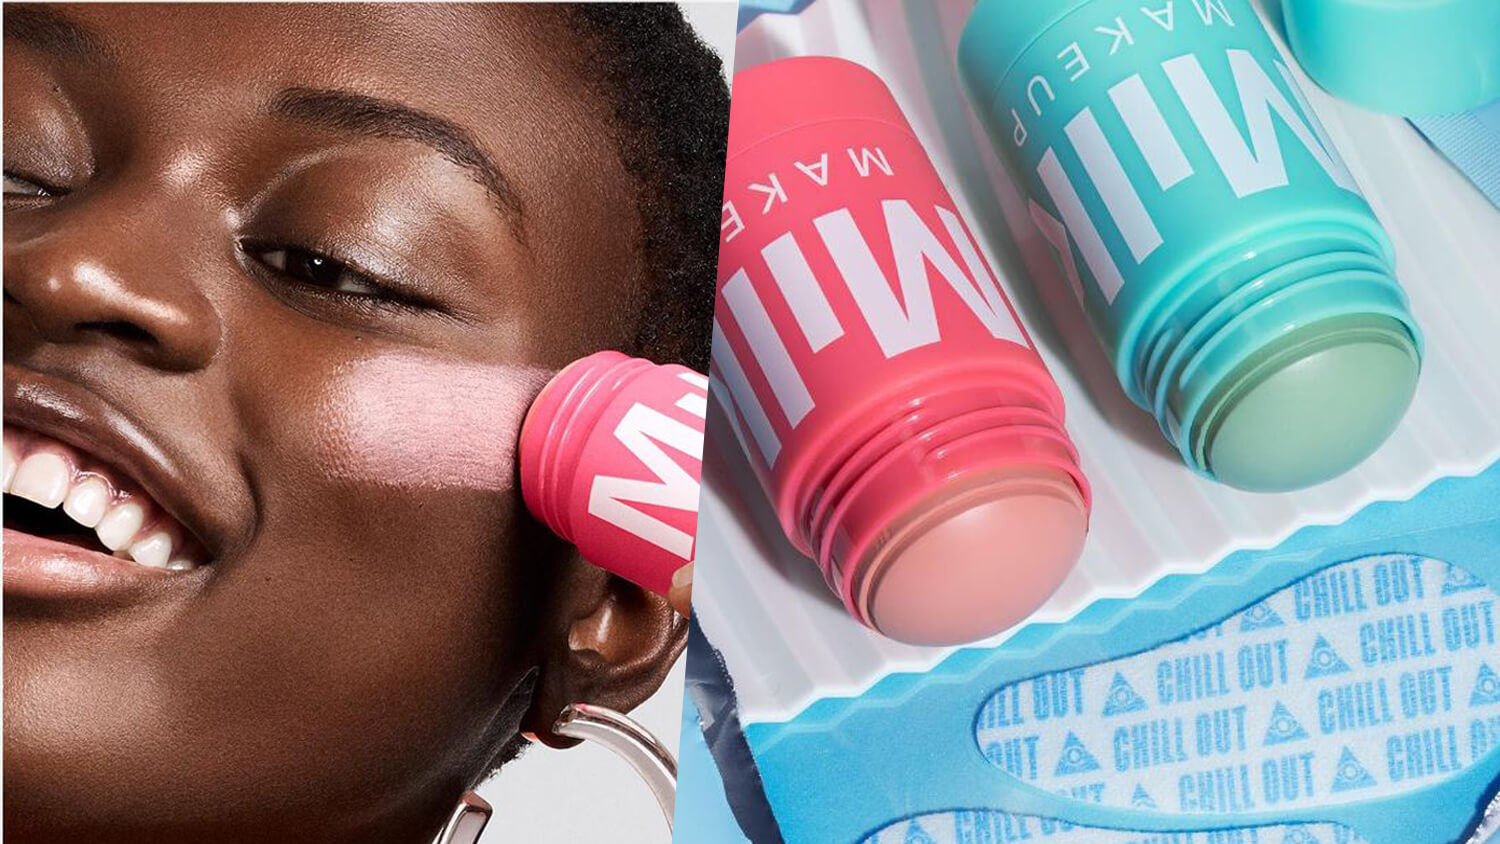 Milk Makeup Launches Vegan Roll-On Face Mask Sticks and De-Puffing Gel Eye Patches for Dark Circles